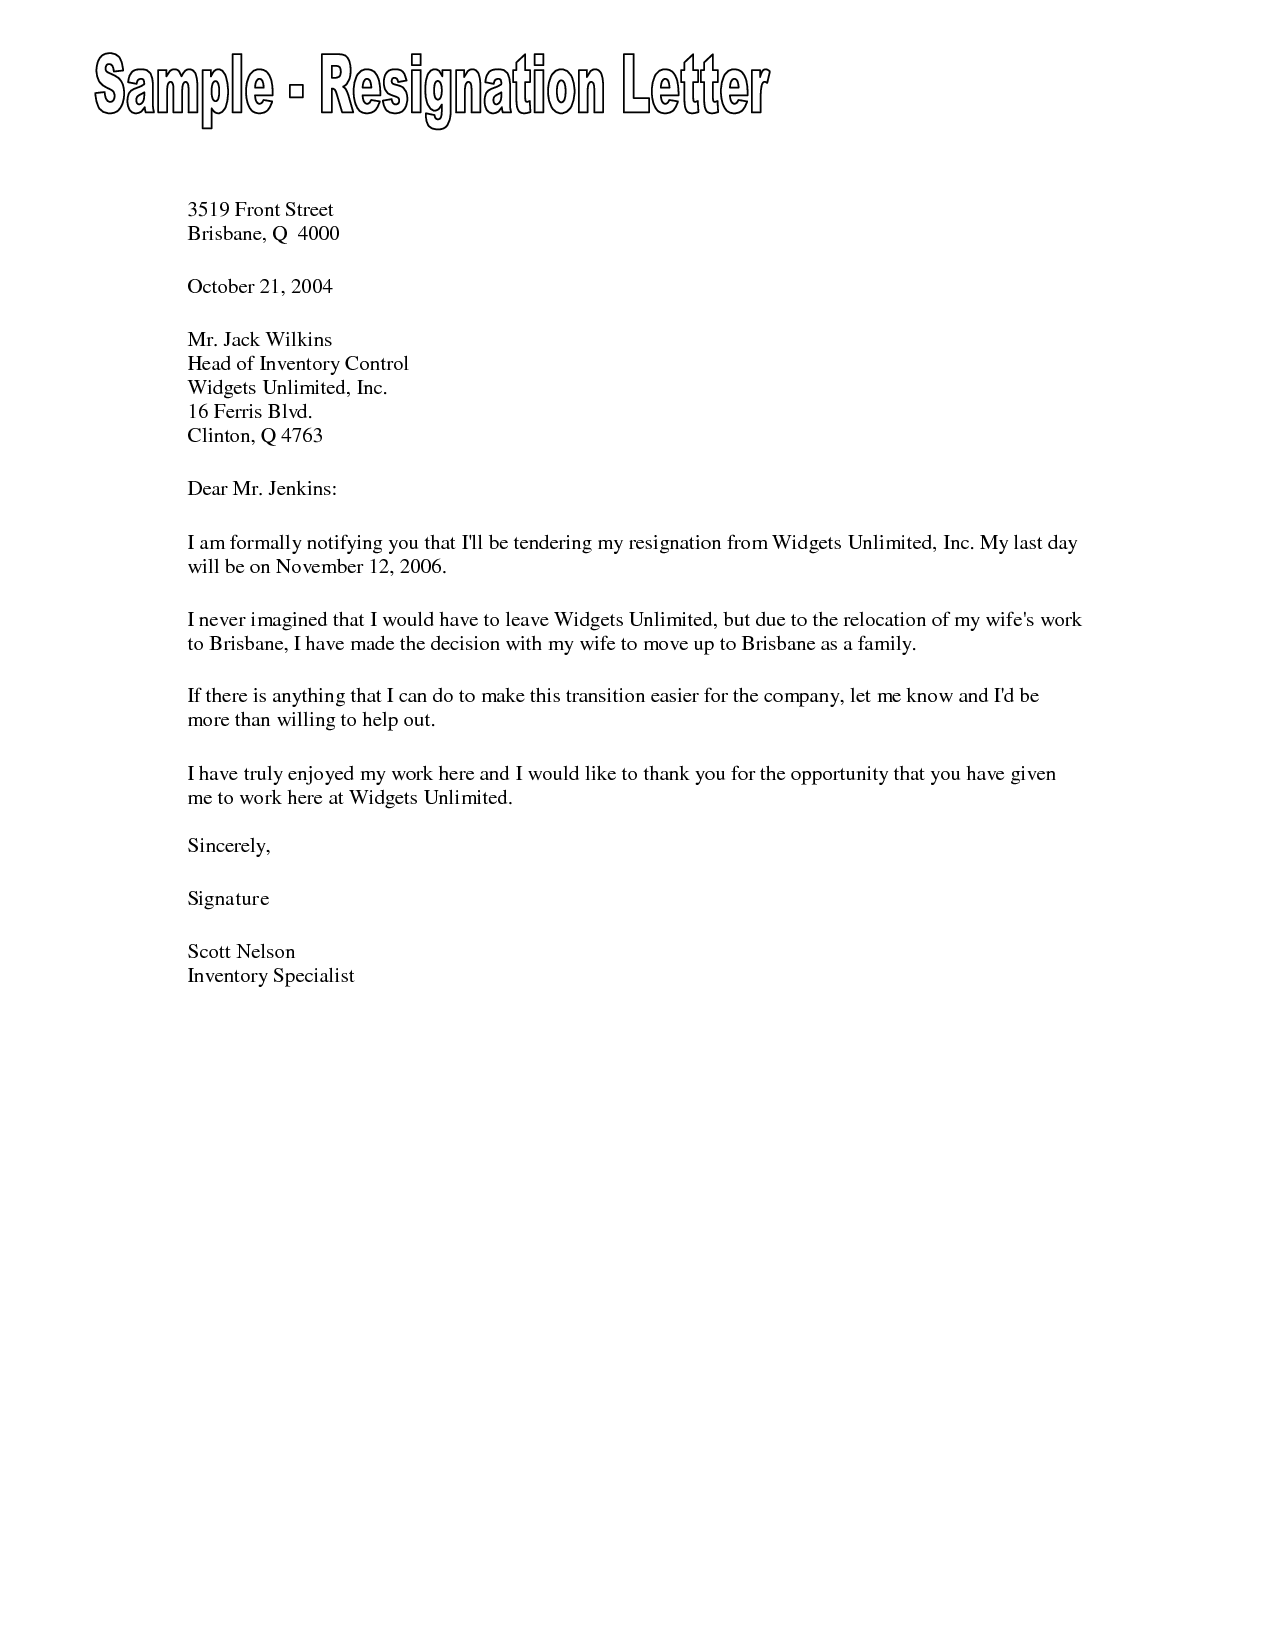 Example letters of resignation download job letter sample business example letters of resignation download job letter sample business letter sample photo how to write a spiritdancerdesigns Images